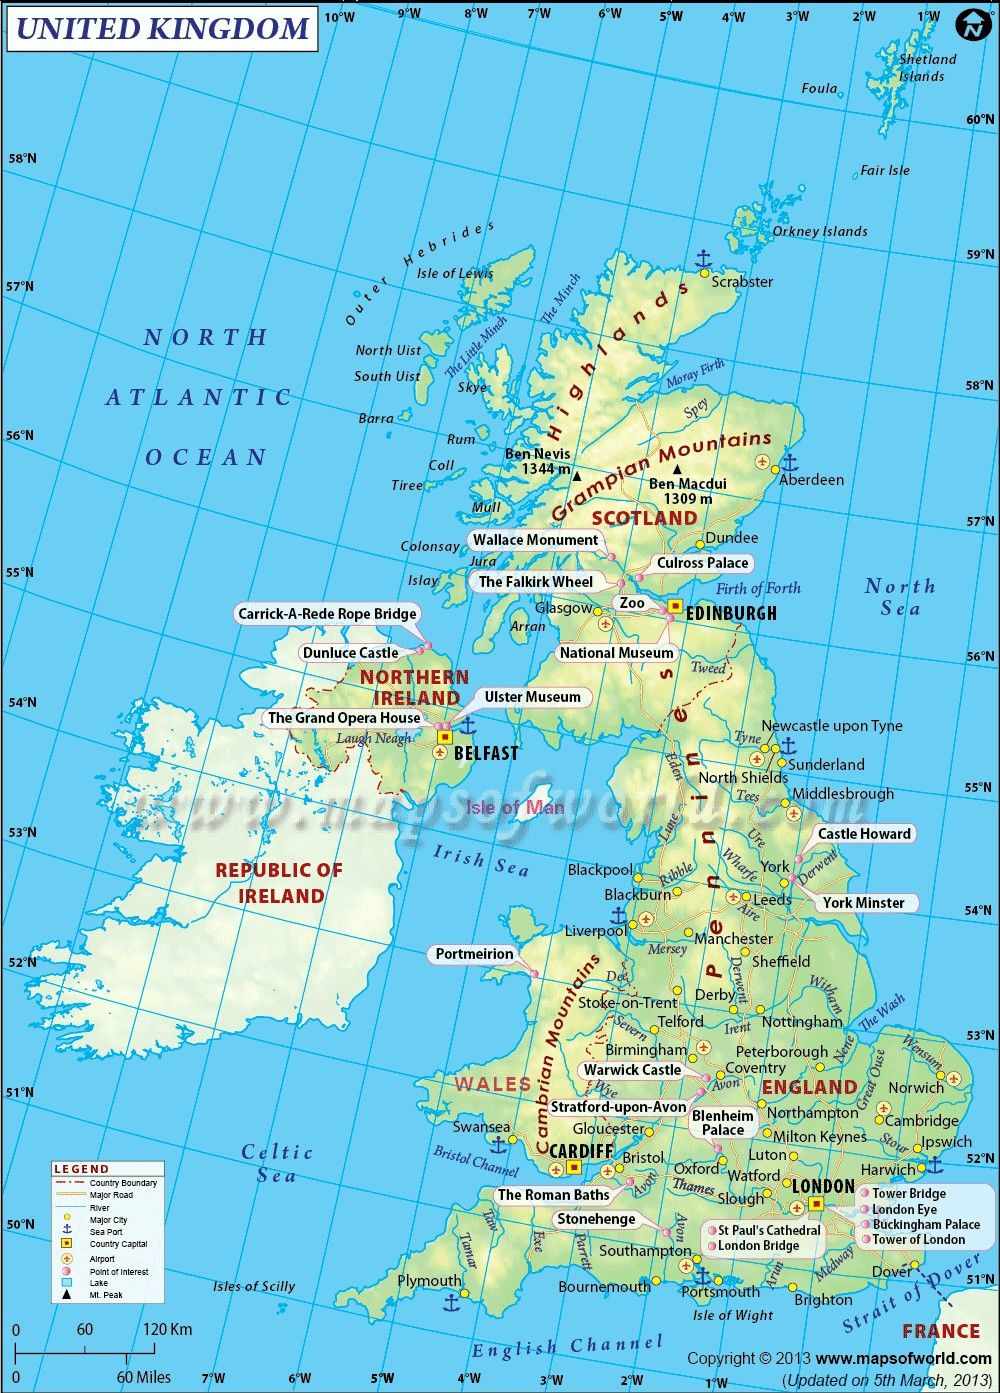 United Kingdom On The World Map.United Kingdom Worldmap World Pinterest Map United Kingdom